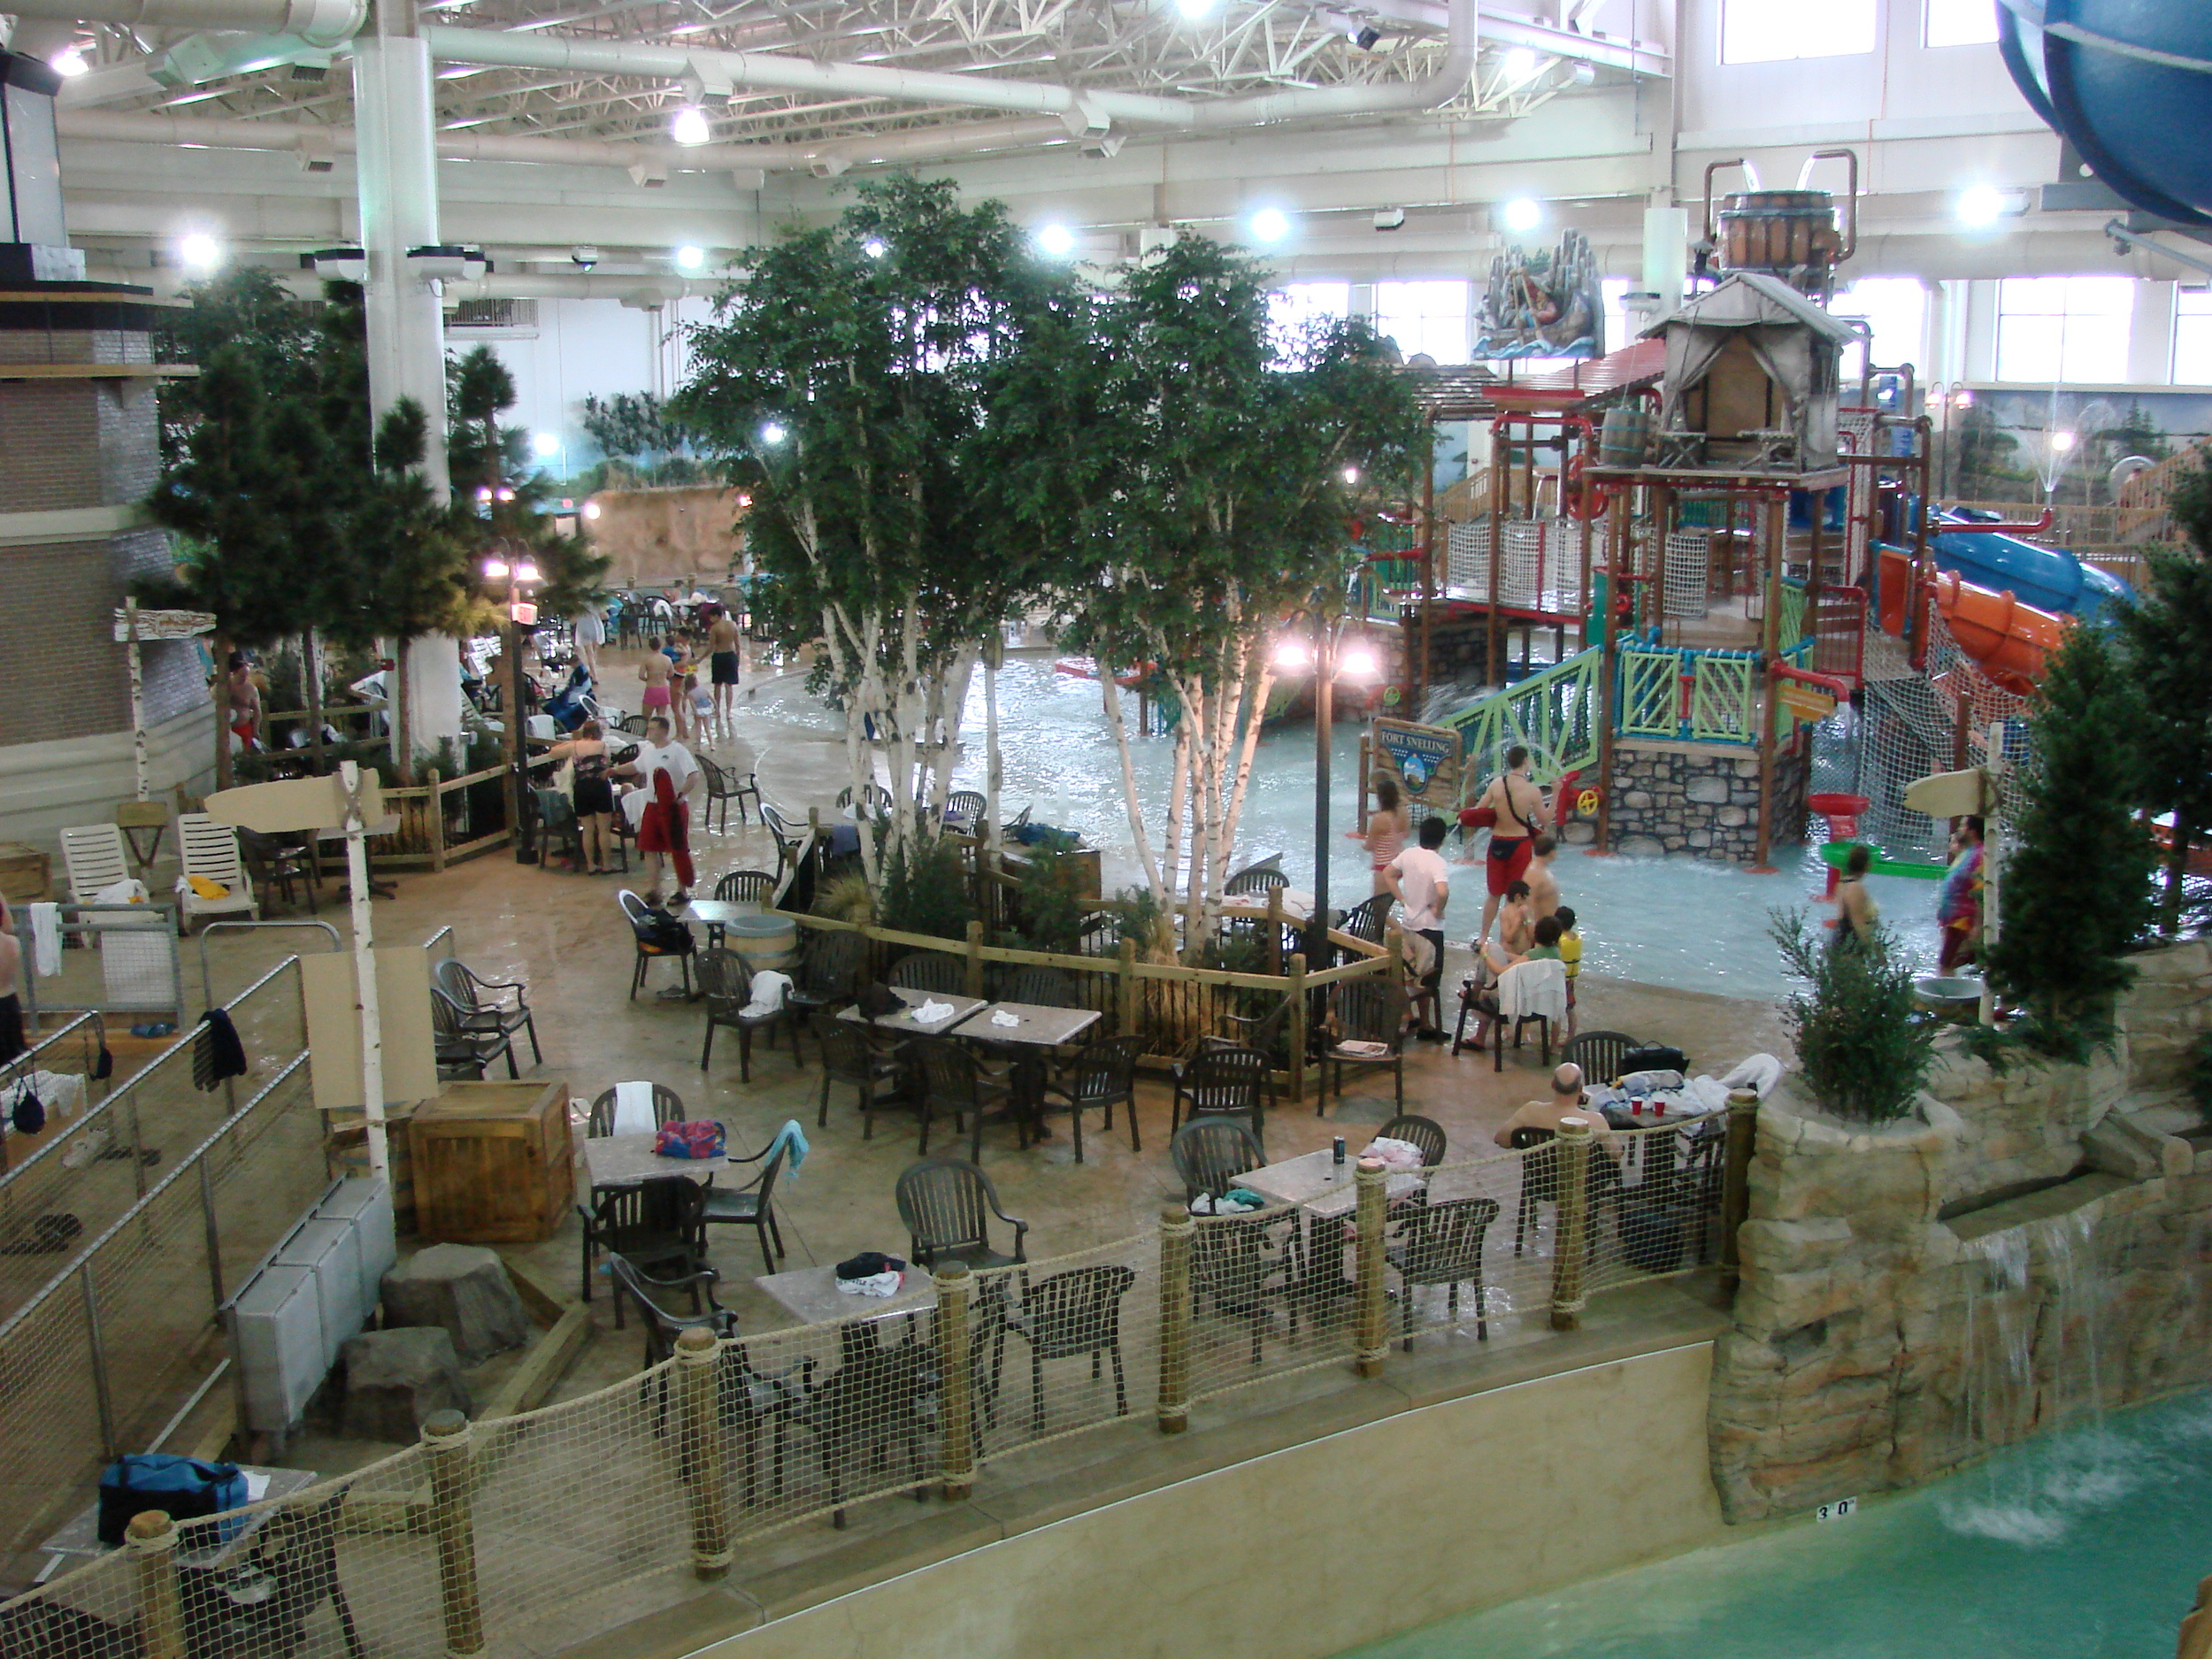 Zoomed out view of the indoor water park at Waterpark of America in Bloomington, MN